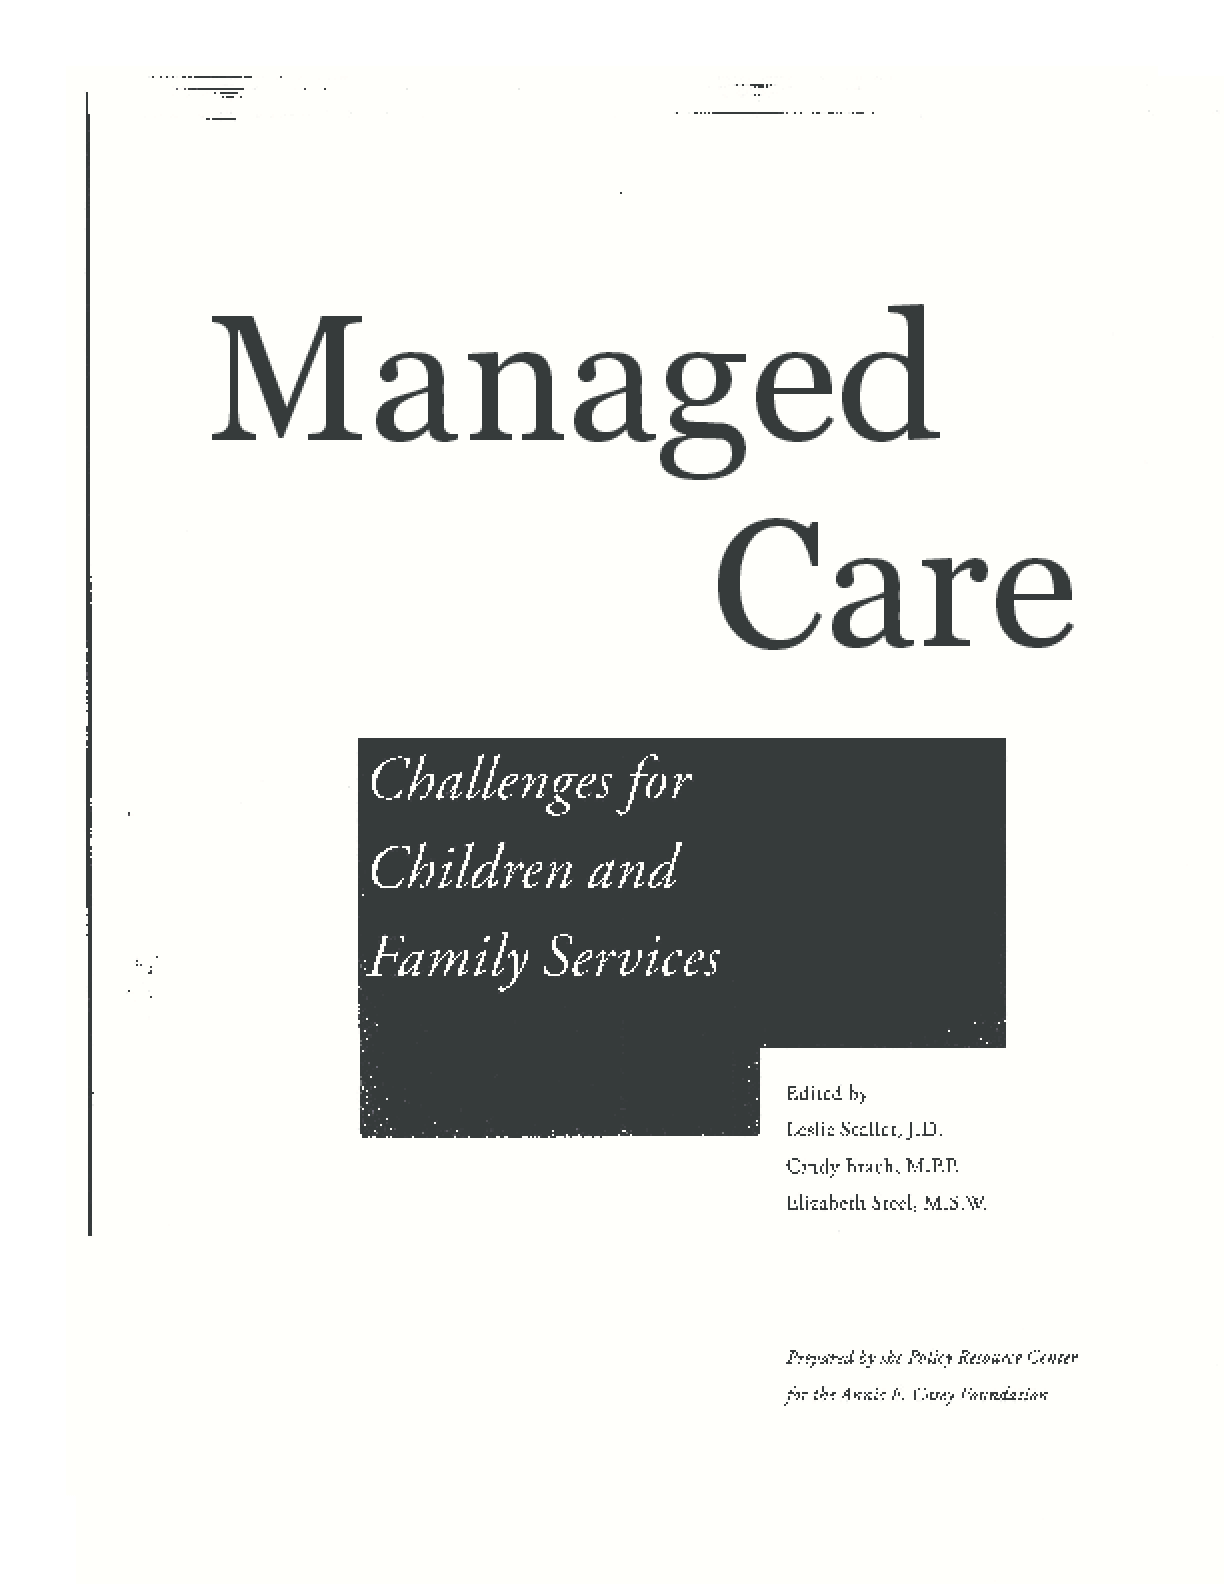 Managed Care: Challenges for Children and Family Services